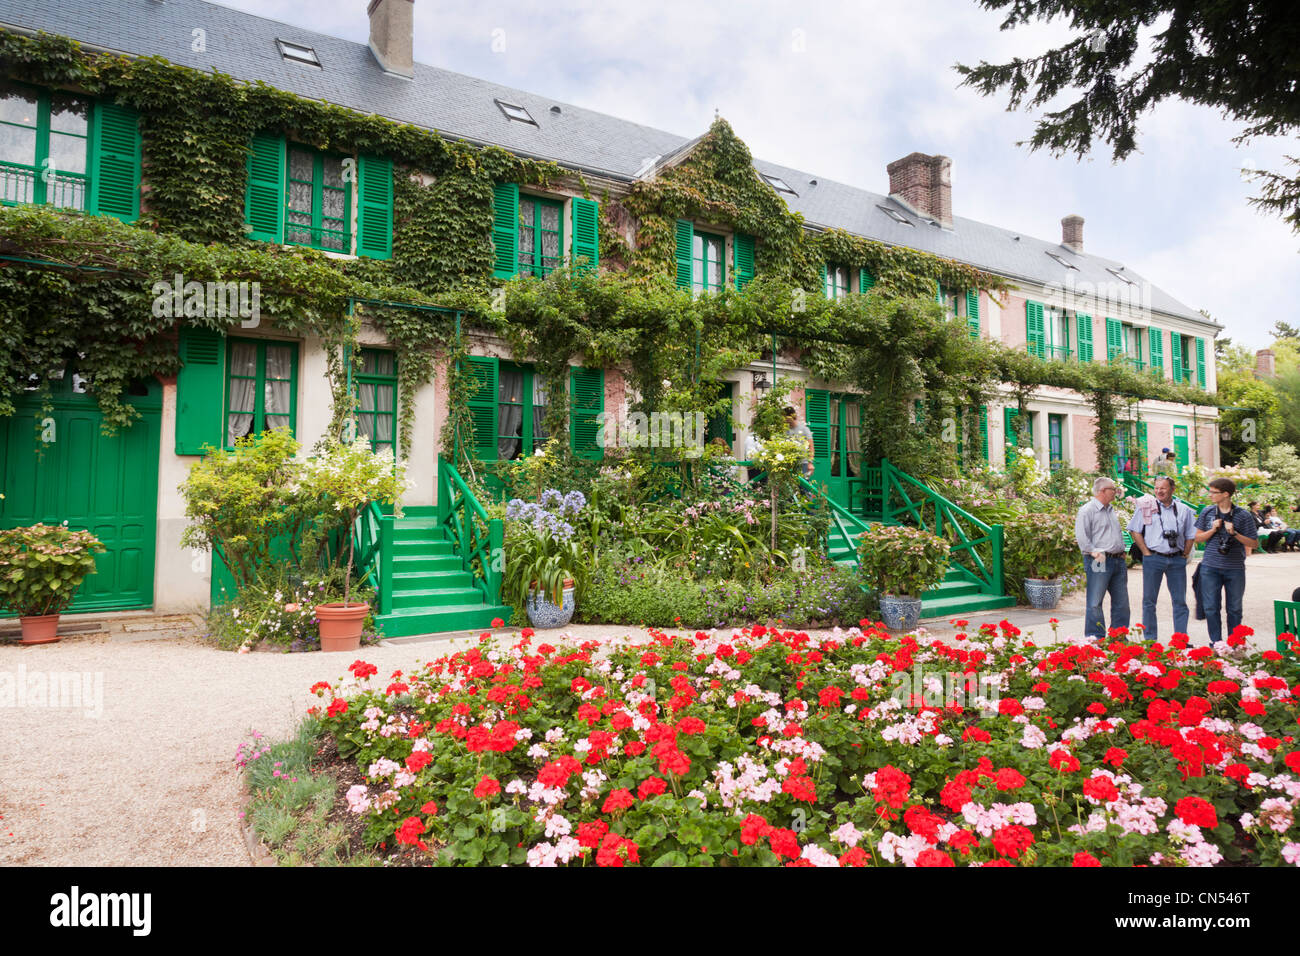 House of Claude Monet, Giverny, France. - Stock Image